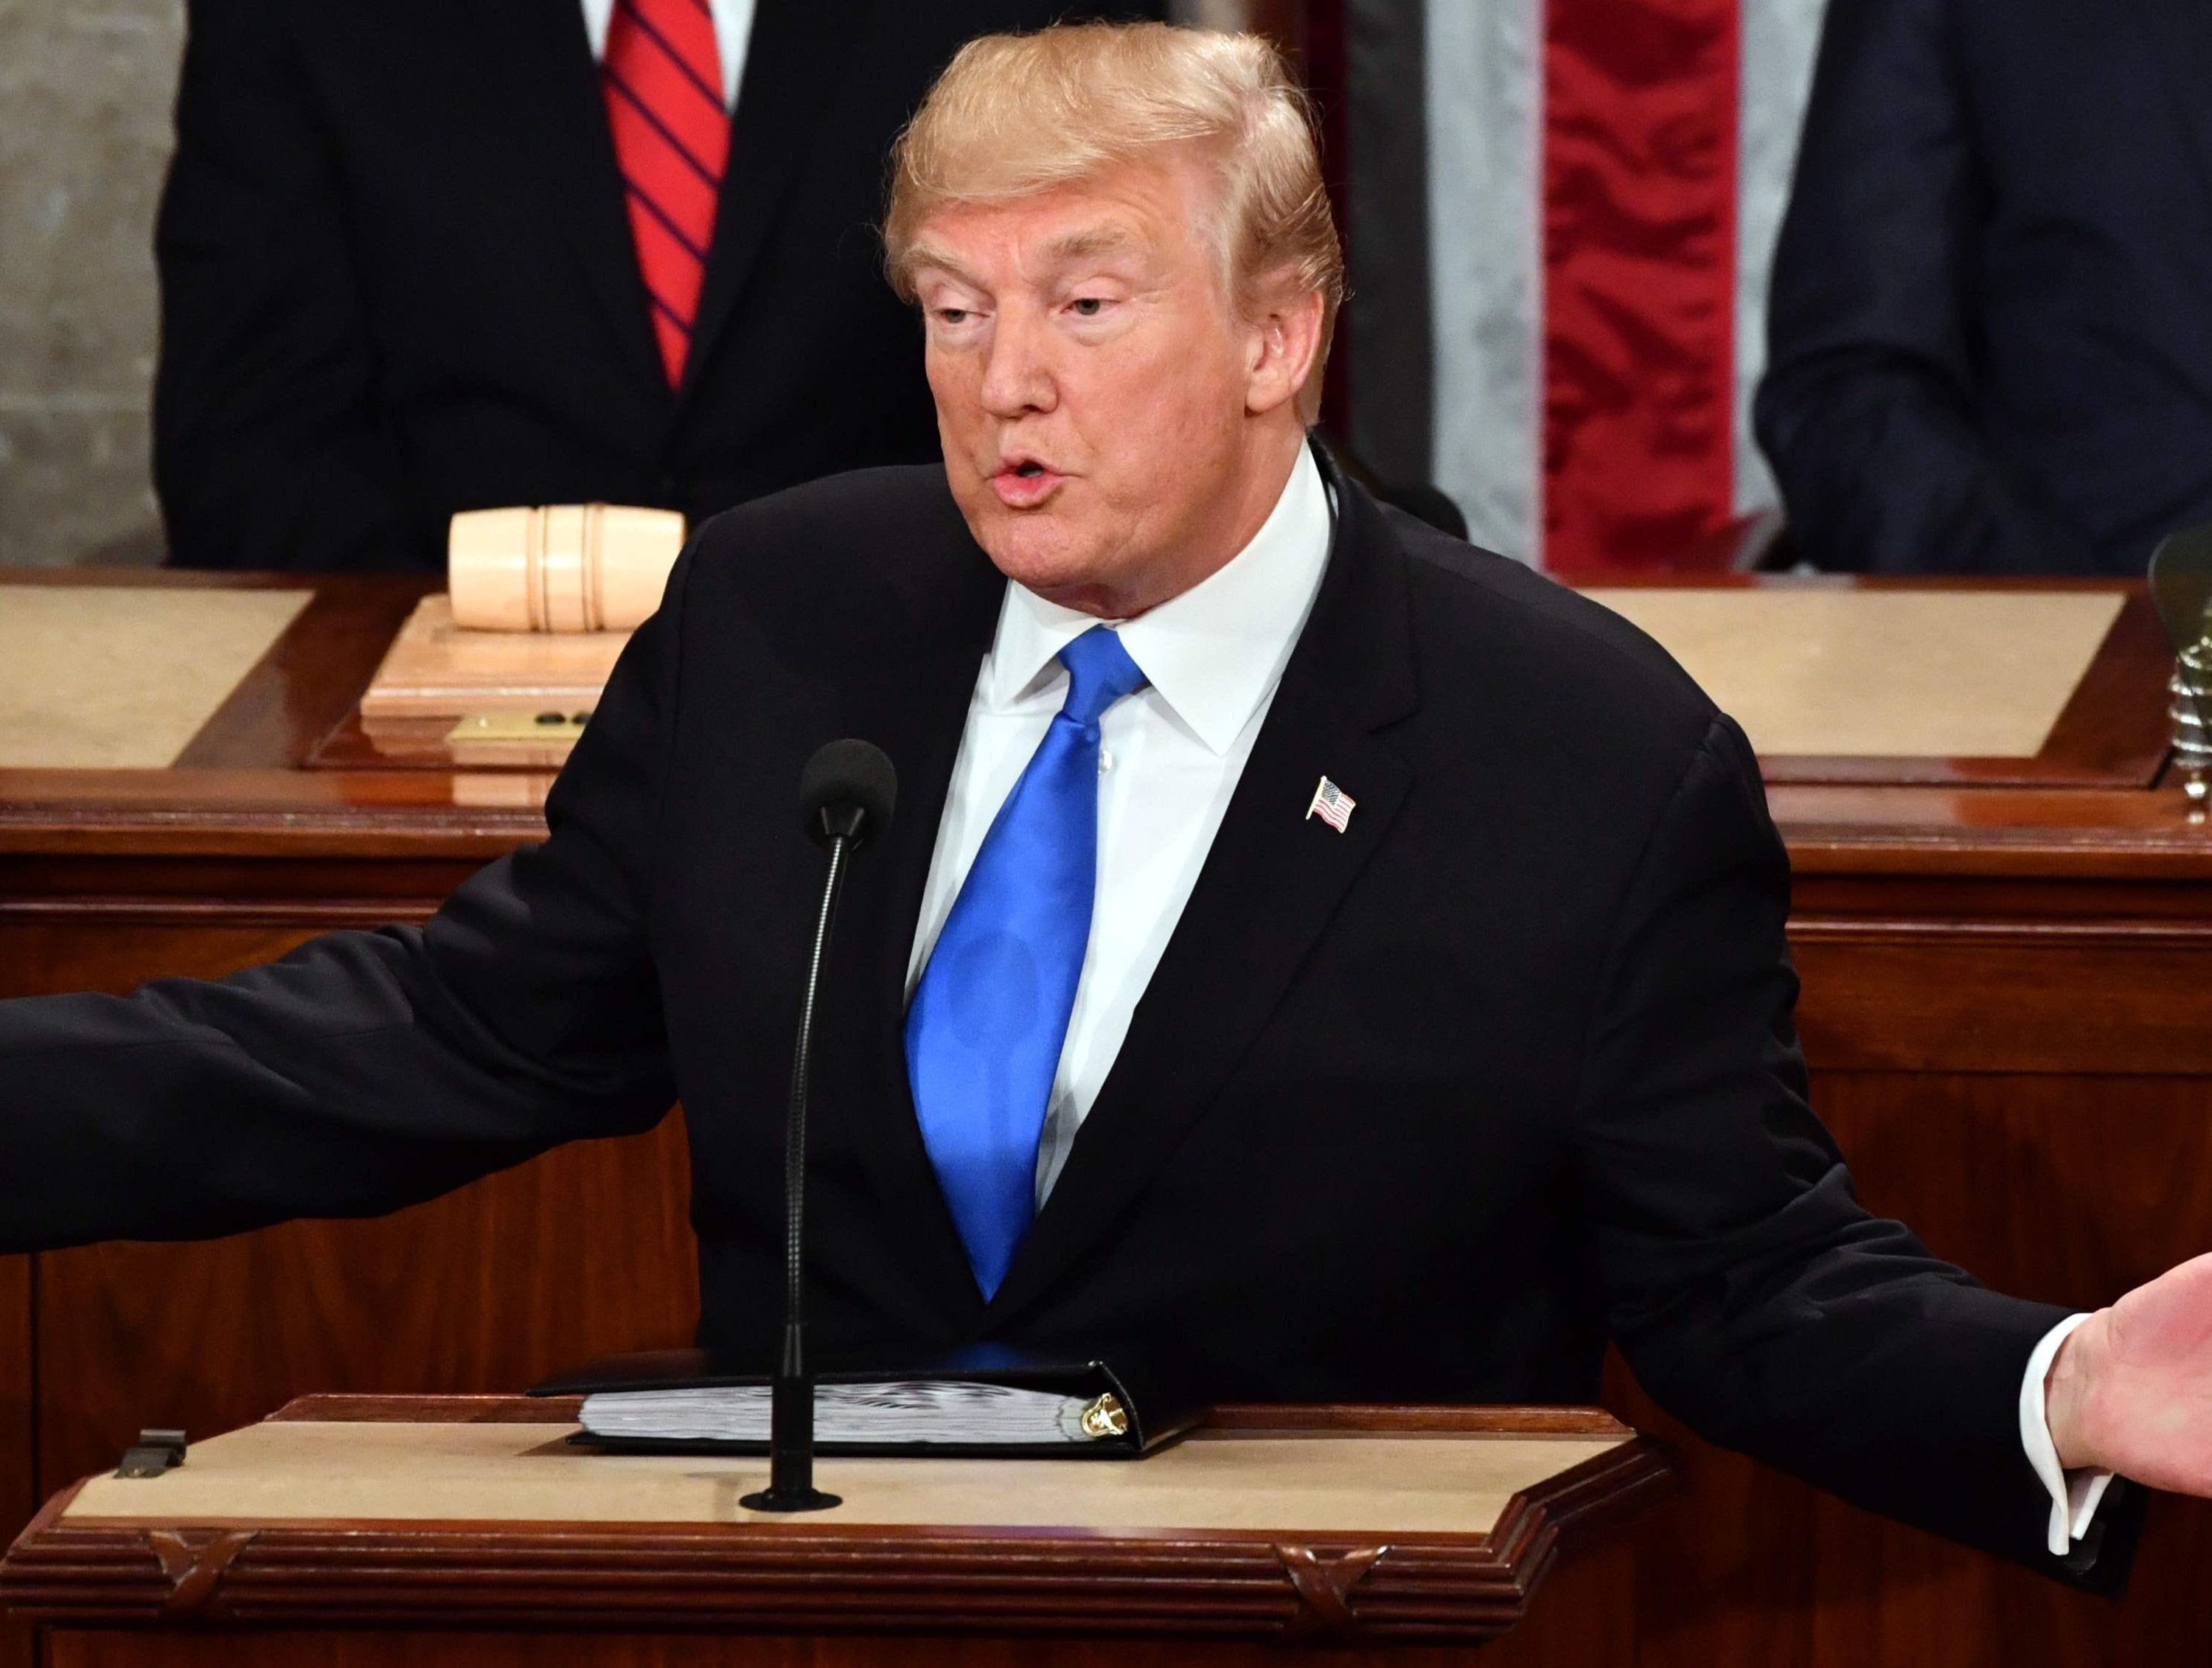 President Donald Trump during the 2018 State of the Union address.